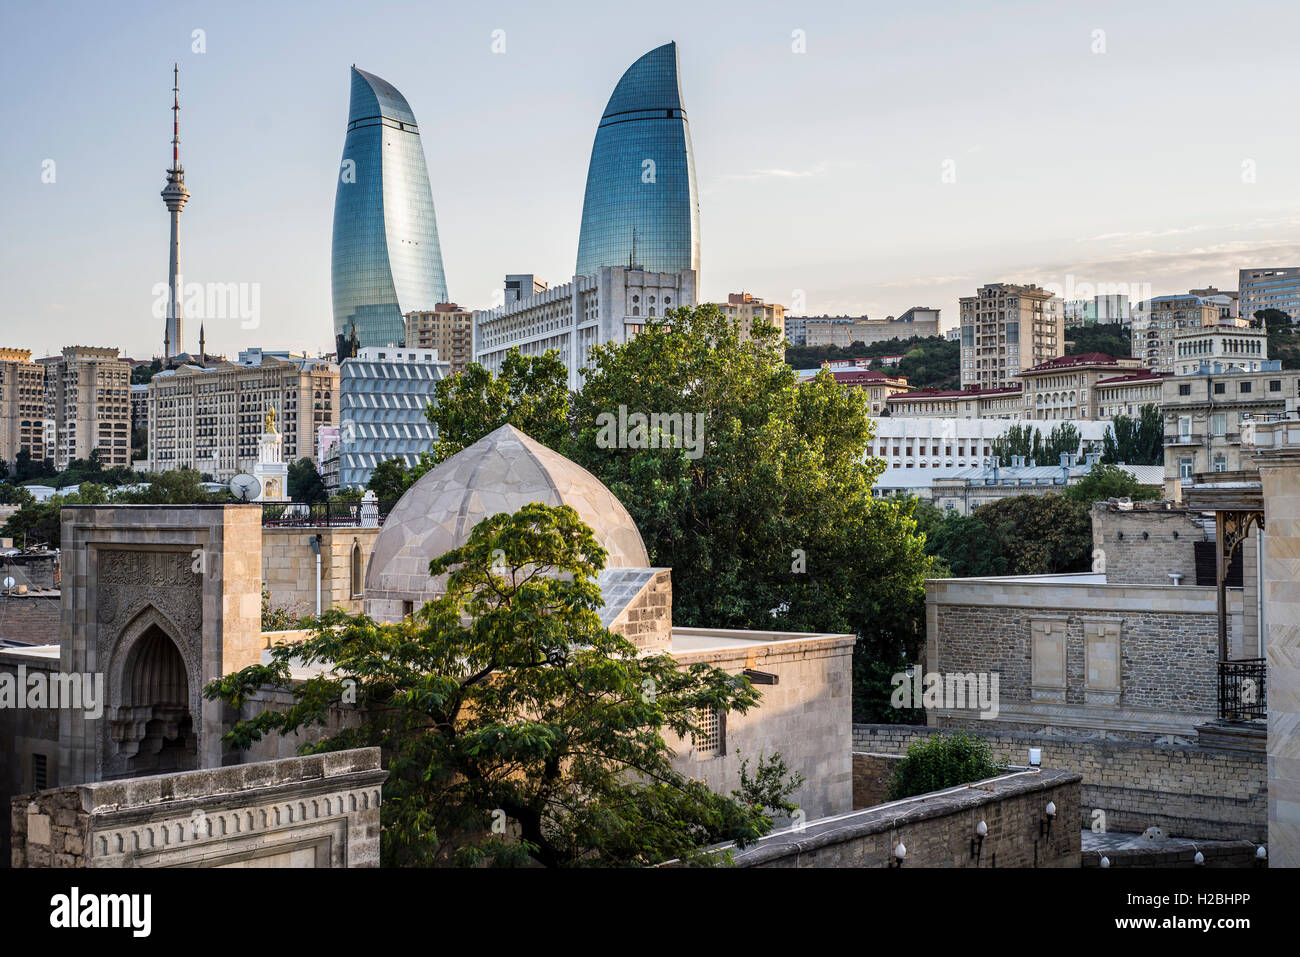 Palace of the Shirvanshahs with the Flame Towers on the background, Baku, Azerbaijan - Stock Image